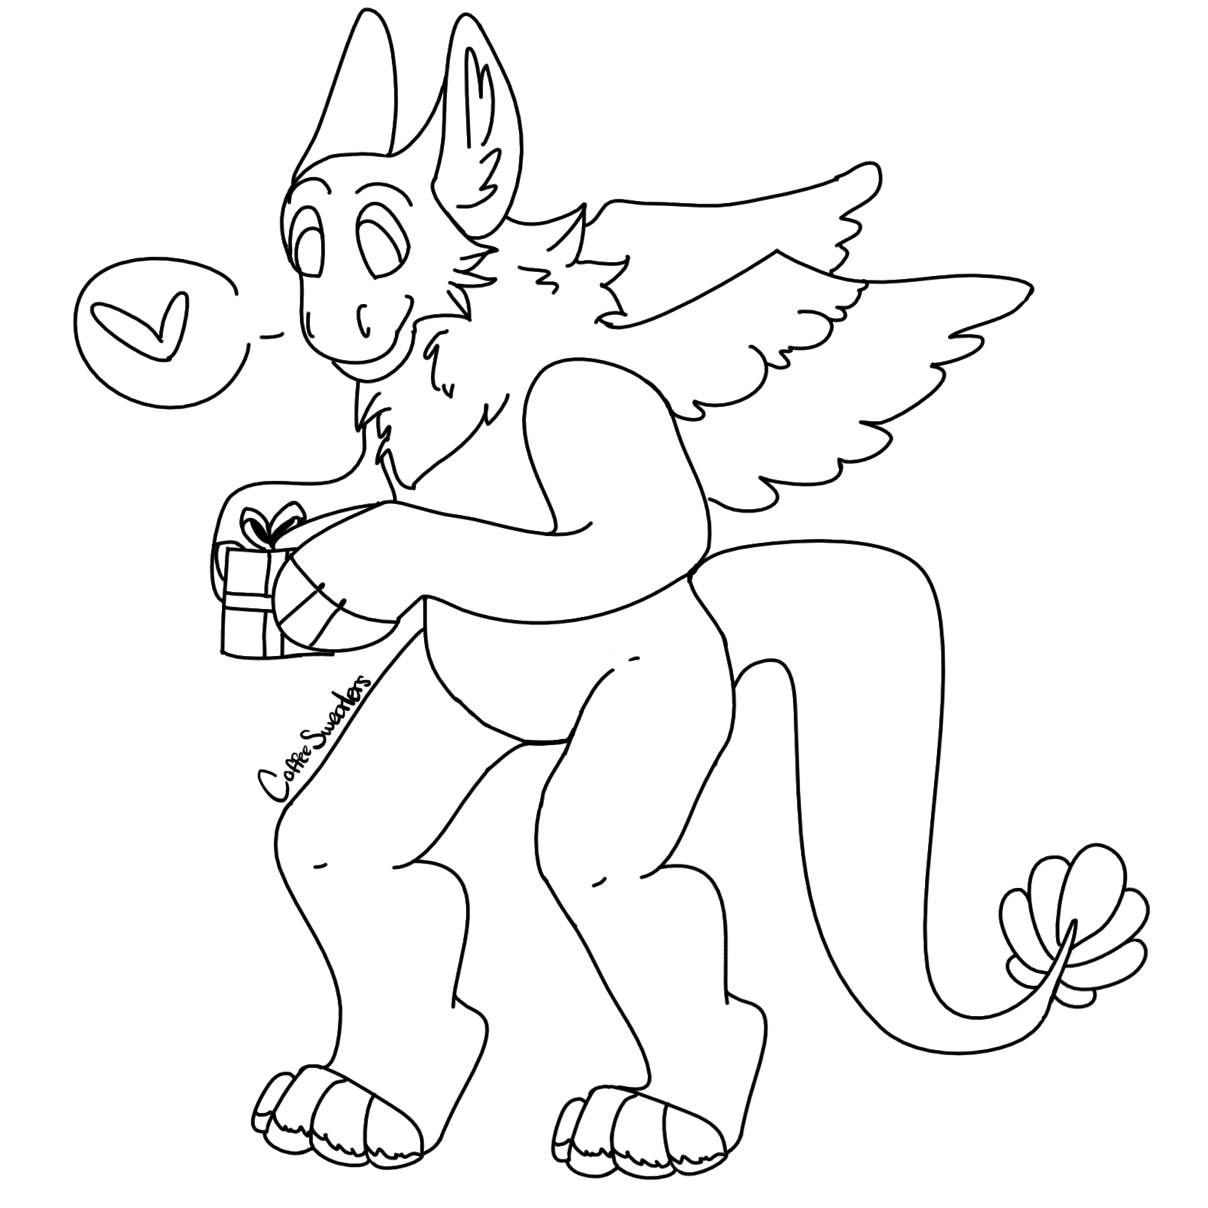 Drawing furry expression. Free use transparent dutch